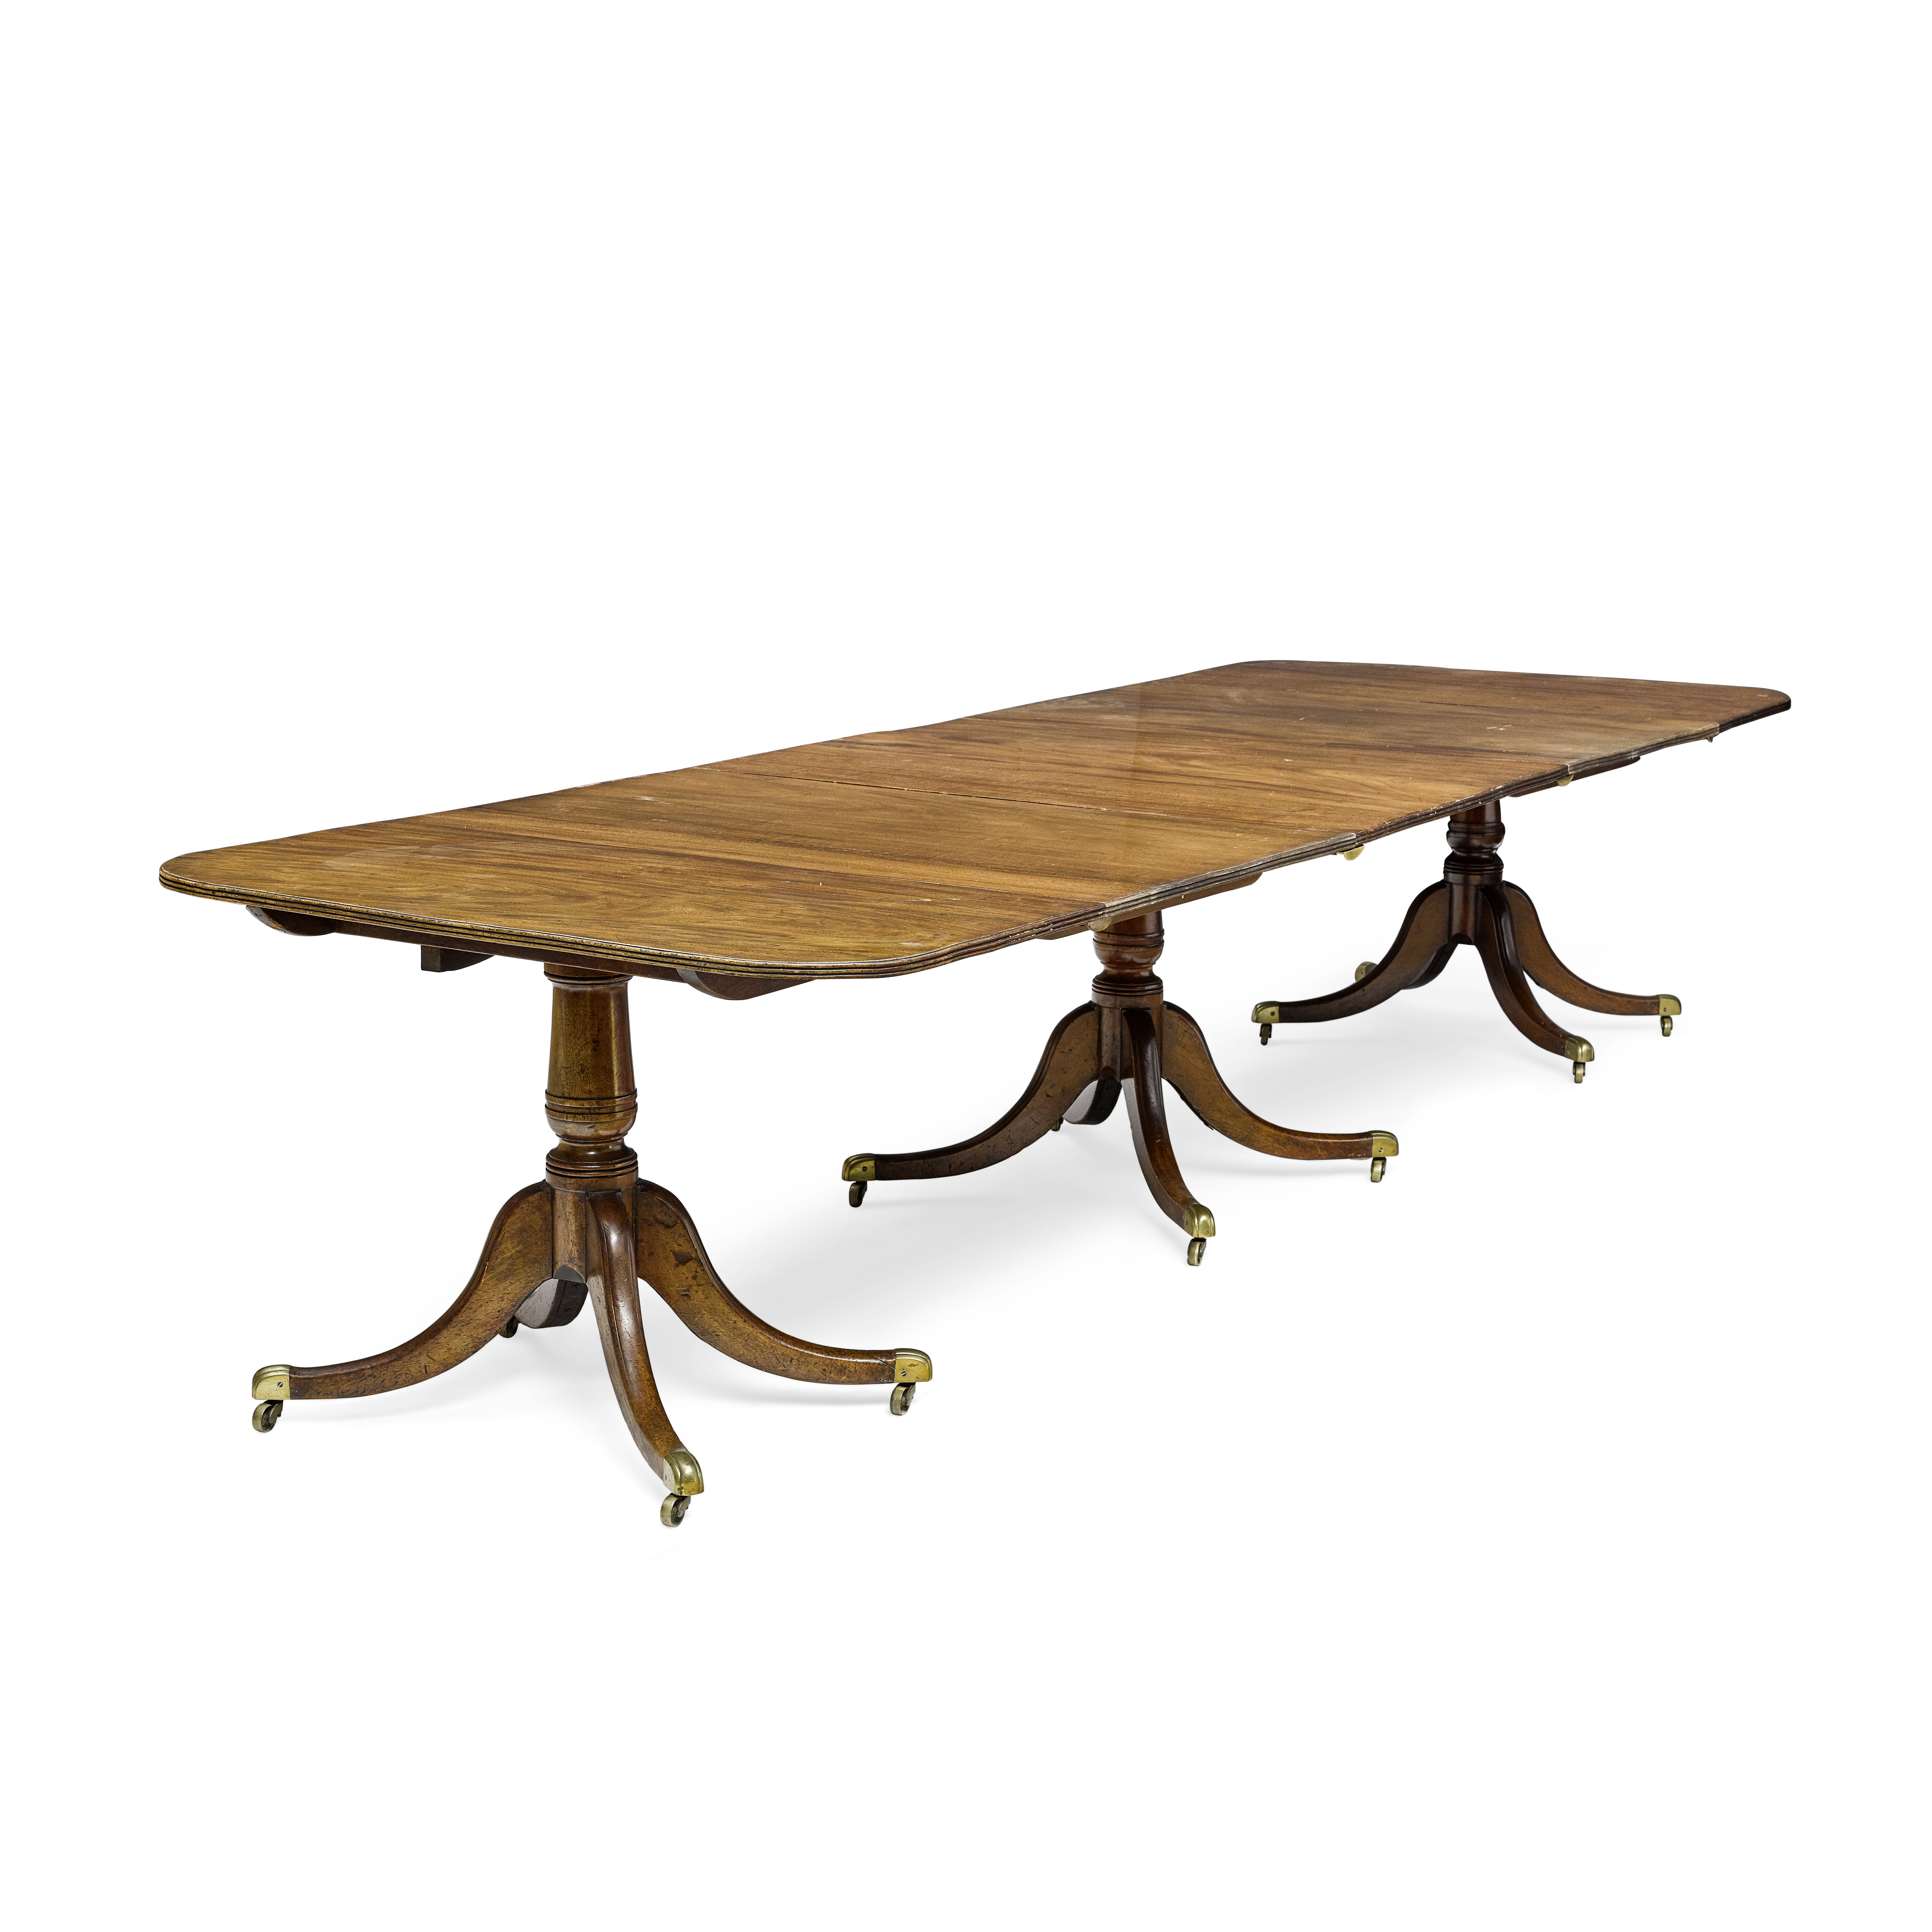 Lot 152 - George III Mahogany triple pedestal dining table Early 19th century